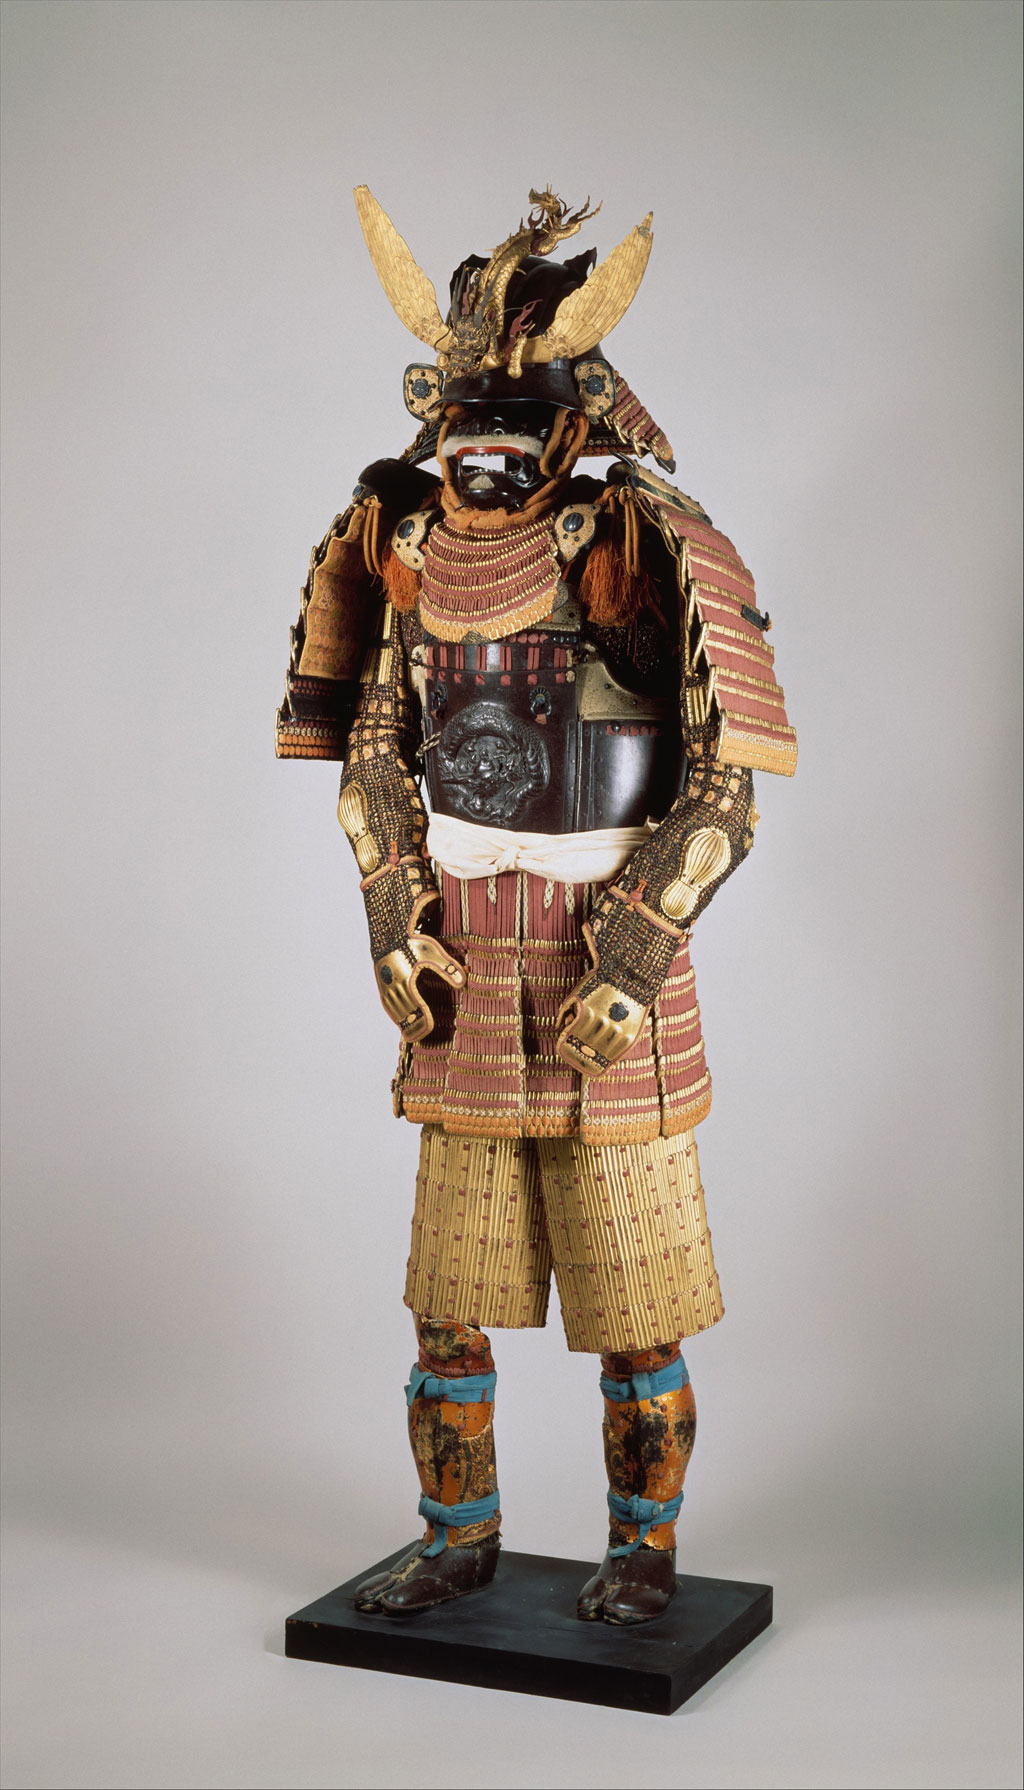 highlights from the met's collection (26)